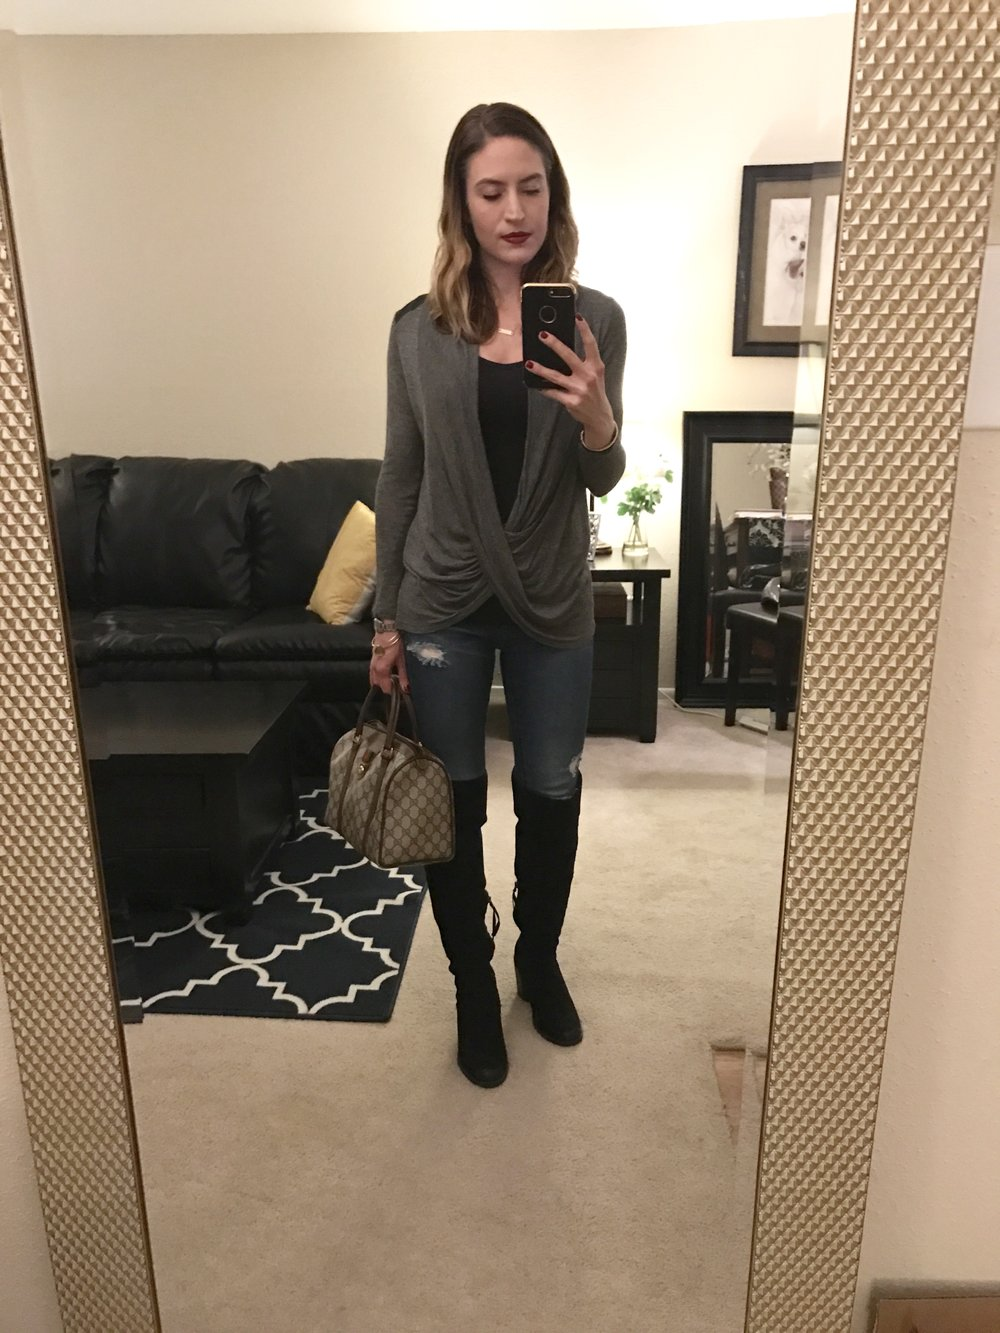 ff jeans and boots3.jpg